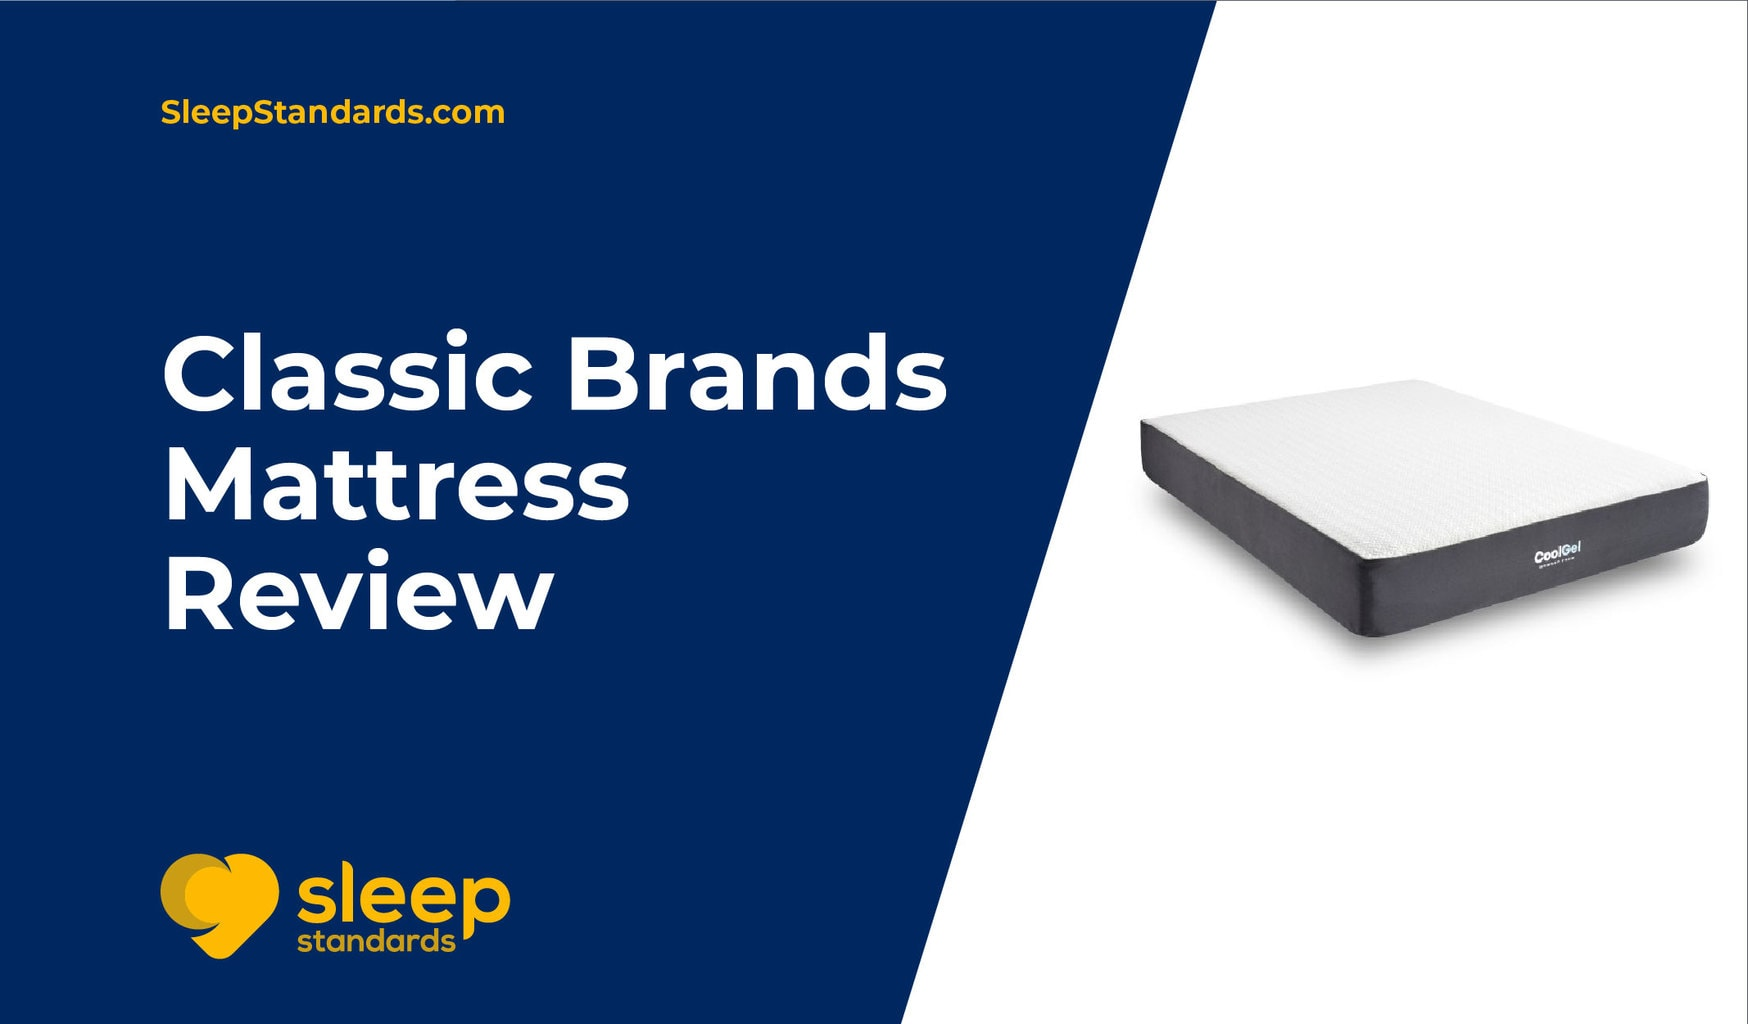 Classic Brands Mattress Review